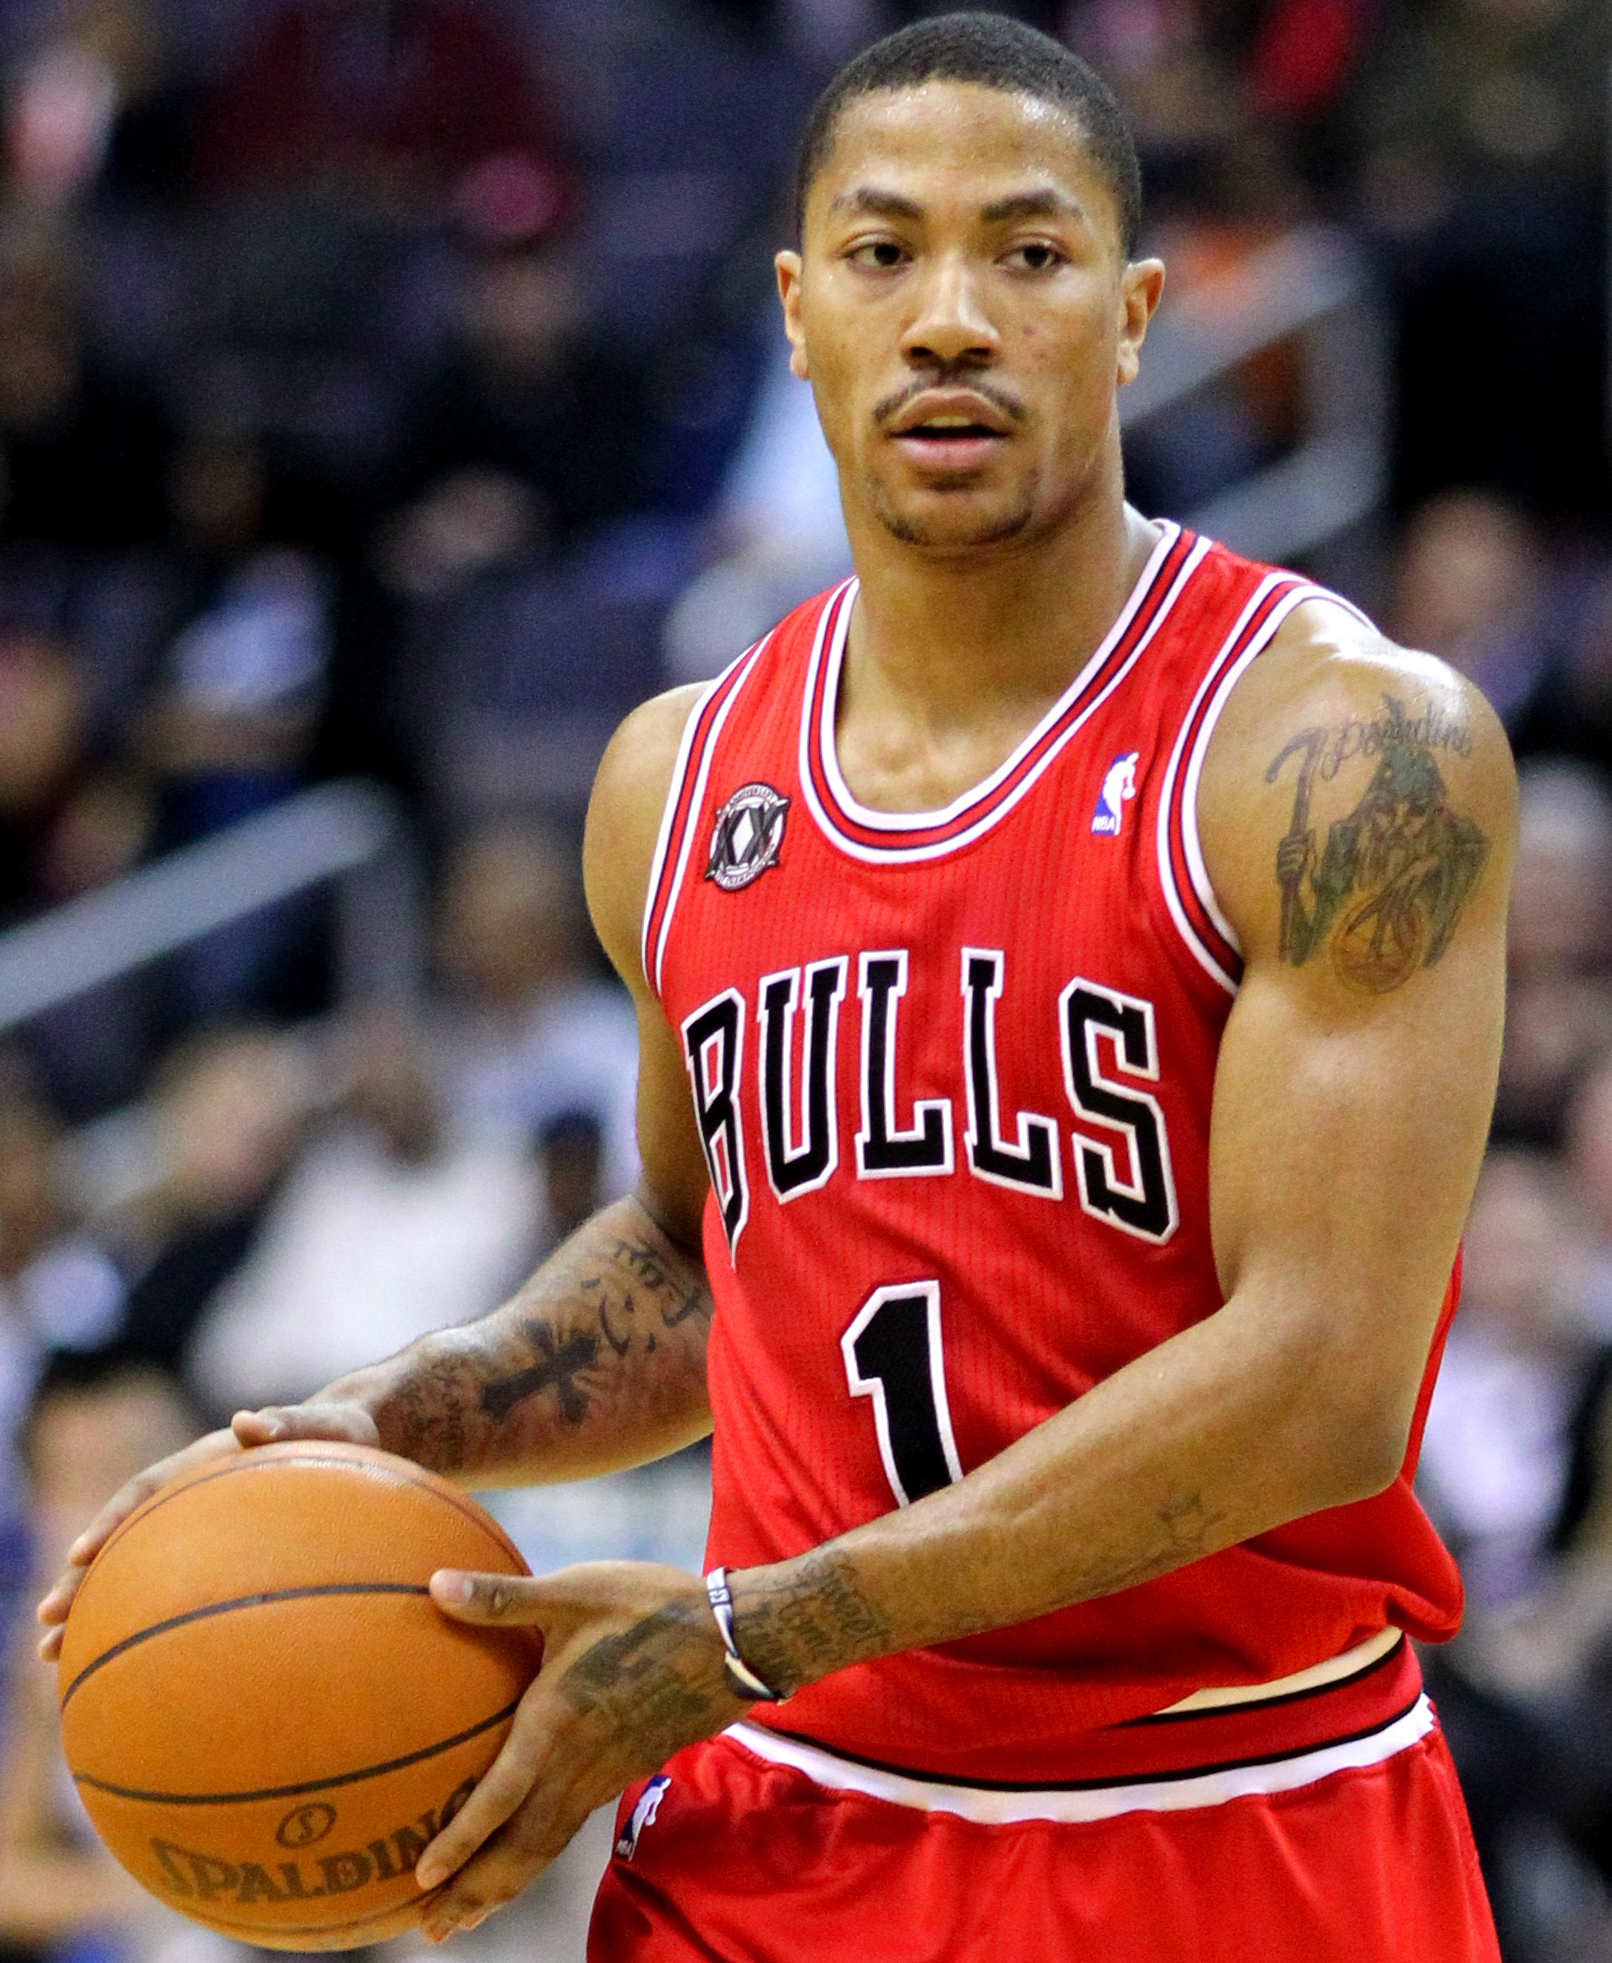 Derrick Rose Backgrounds Wallpapers Backgrounds Images Art Photos 1612x1963